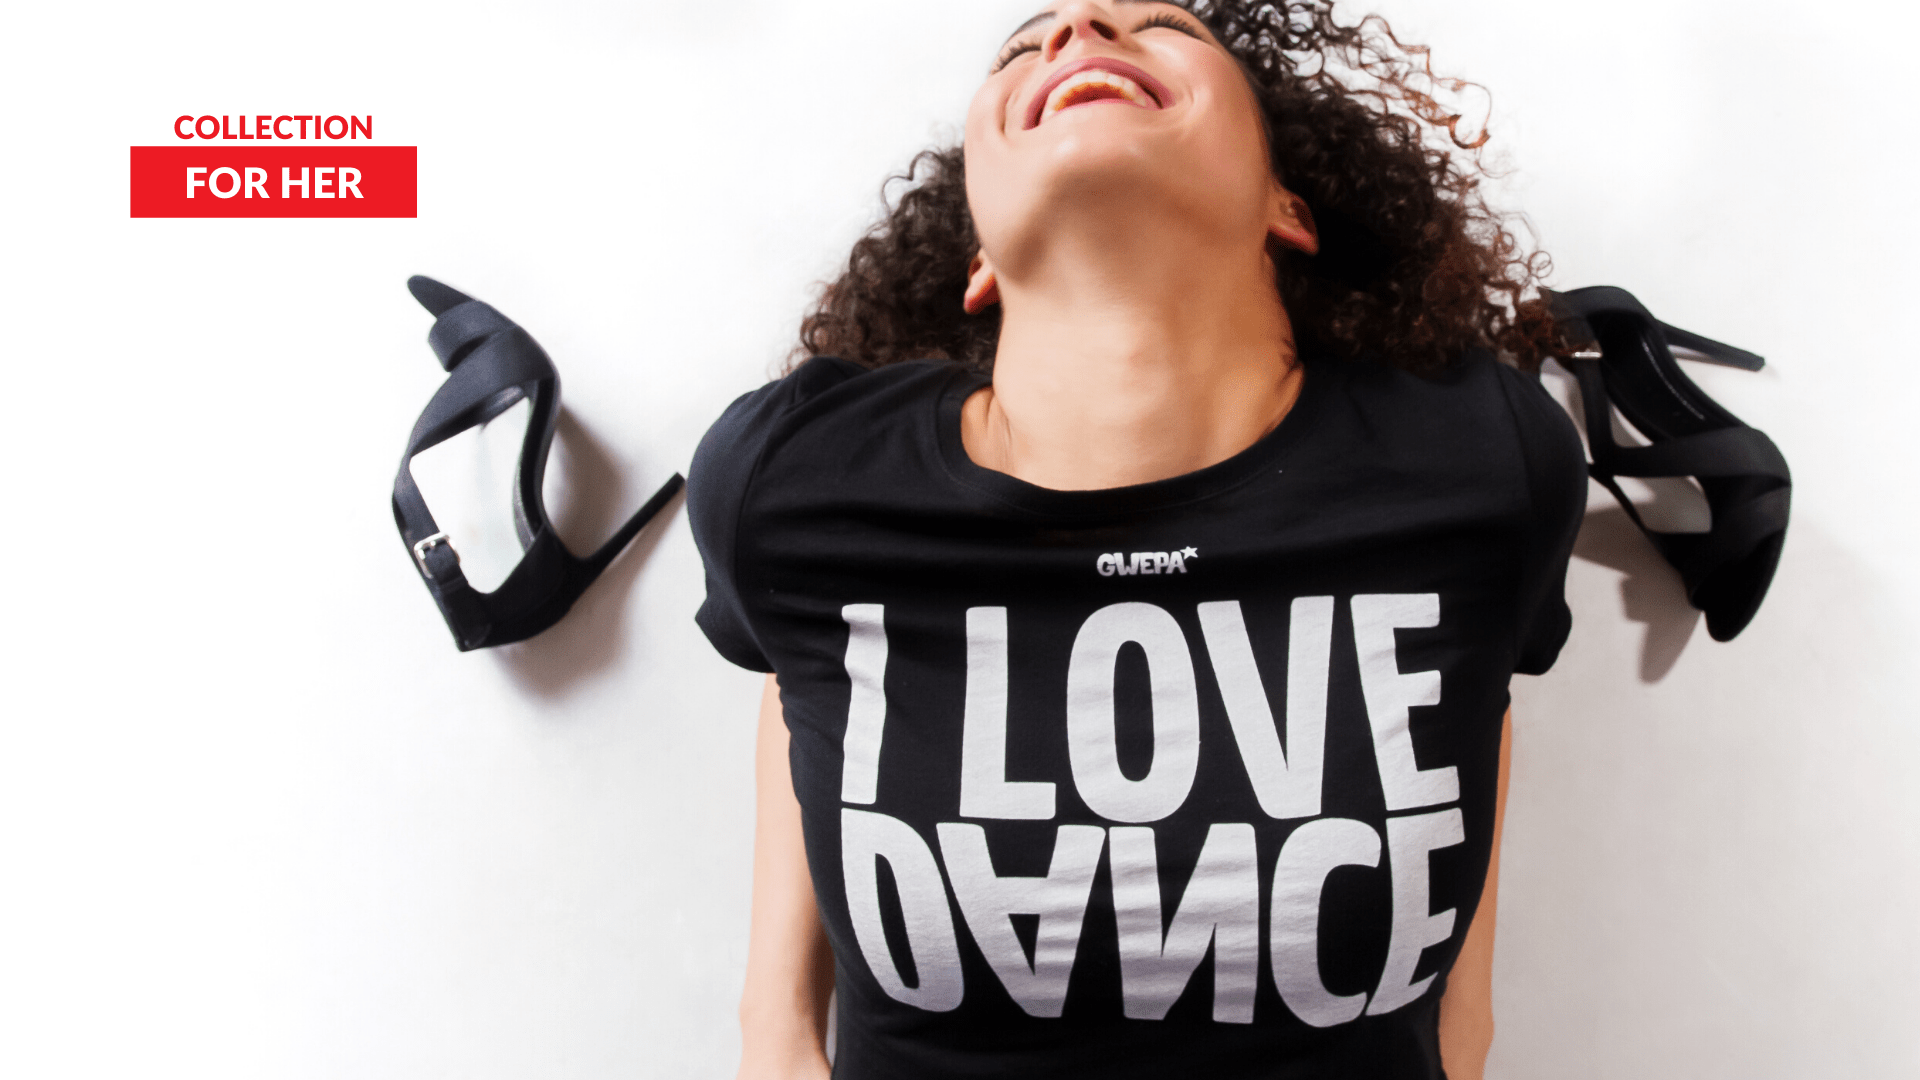 I love dance Black crop top - Gwepa